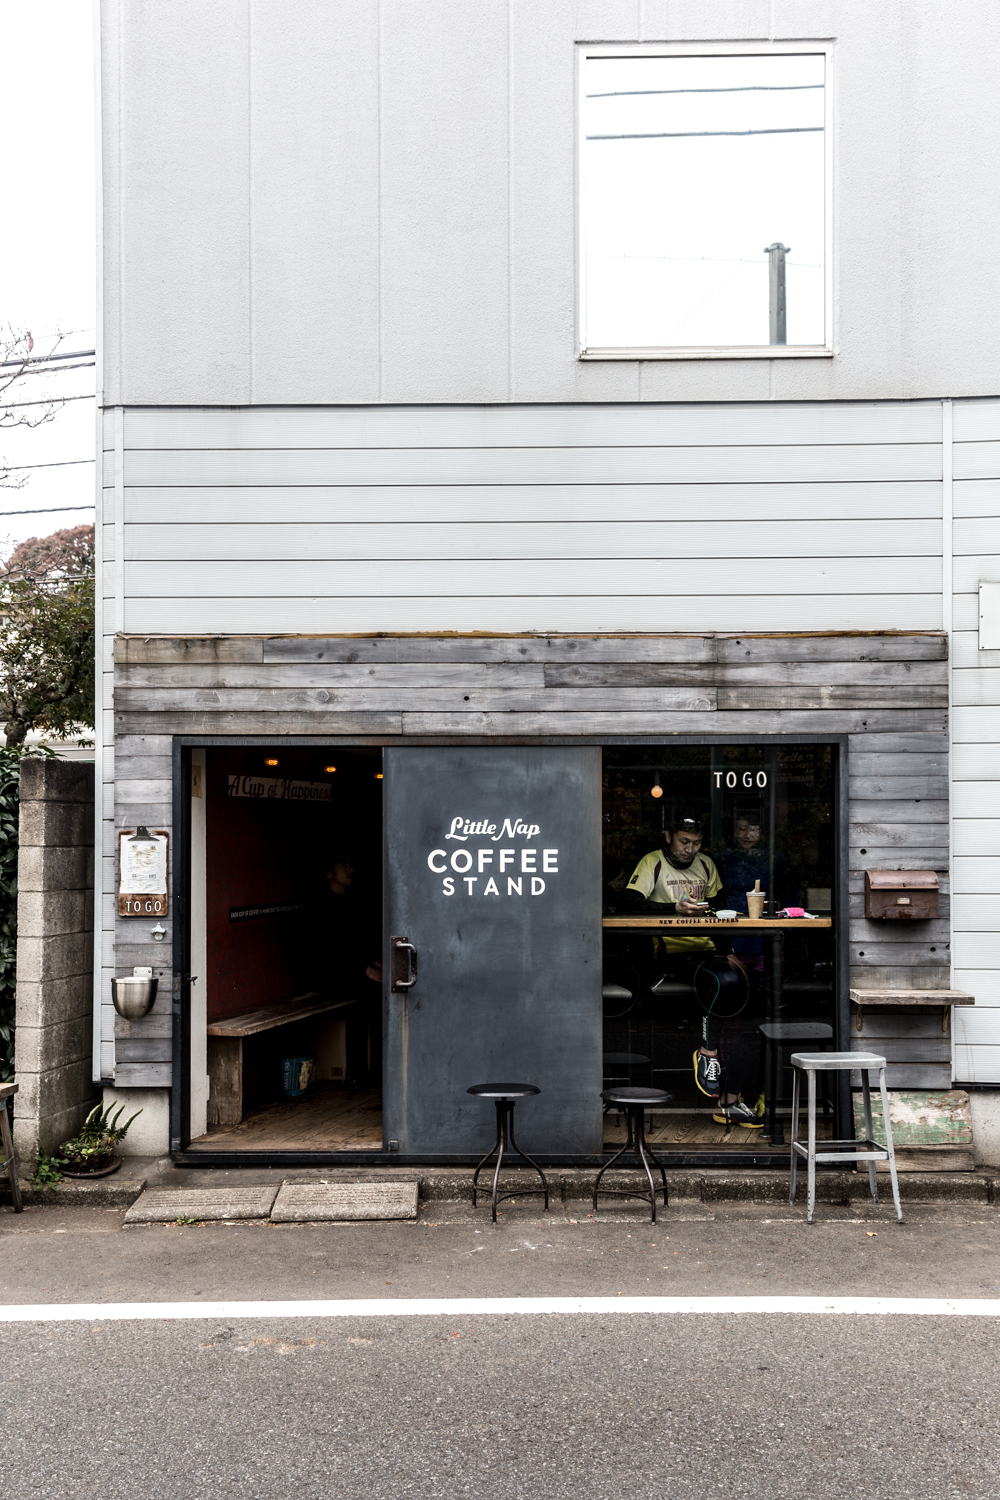 The Little Nap Coffee Stand - the tiniest cafe I have ever set foot in with excellent coffee